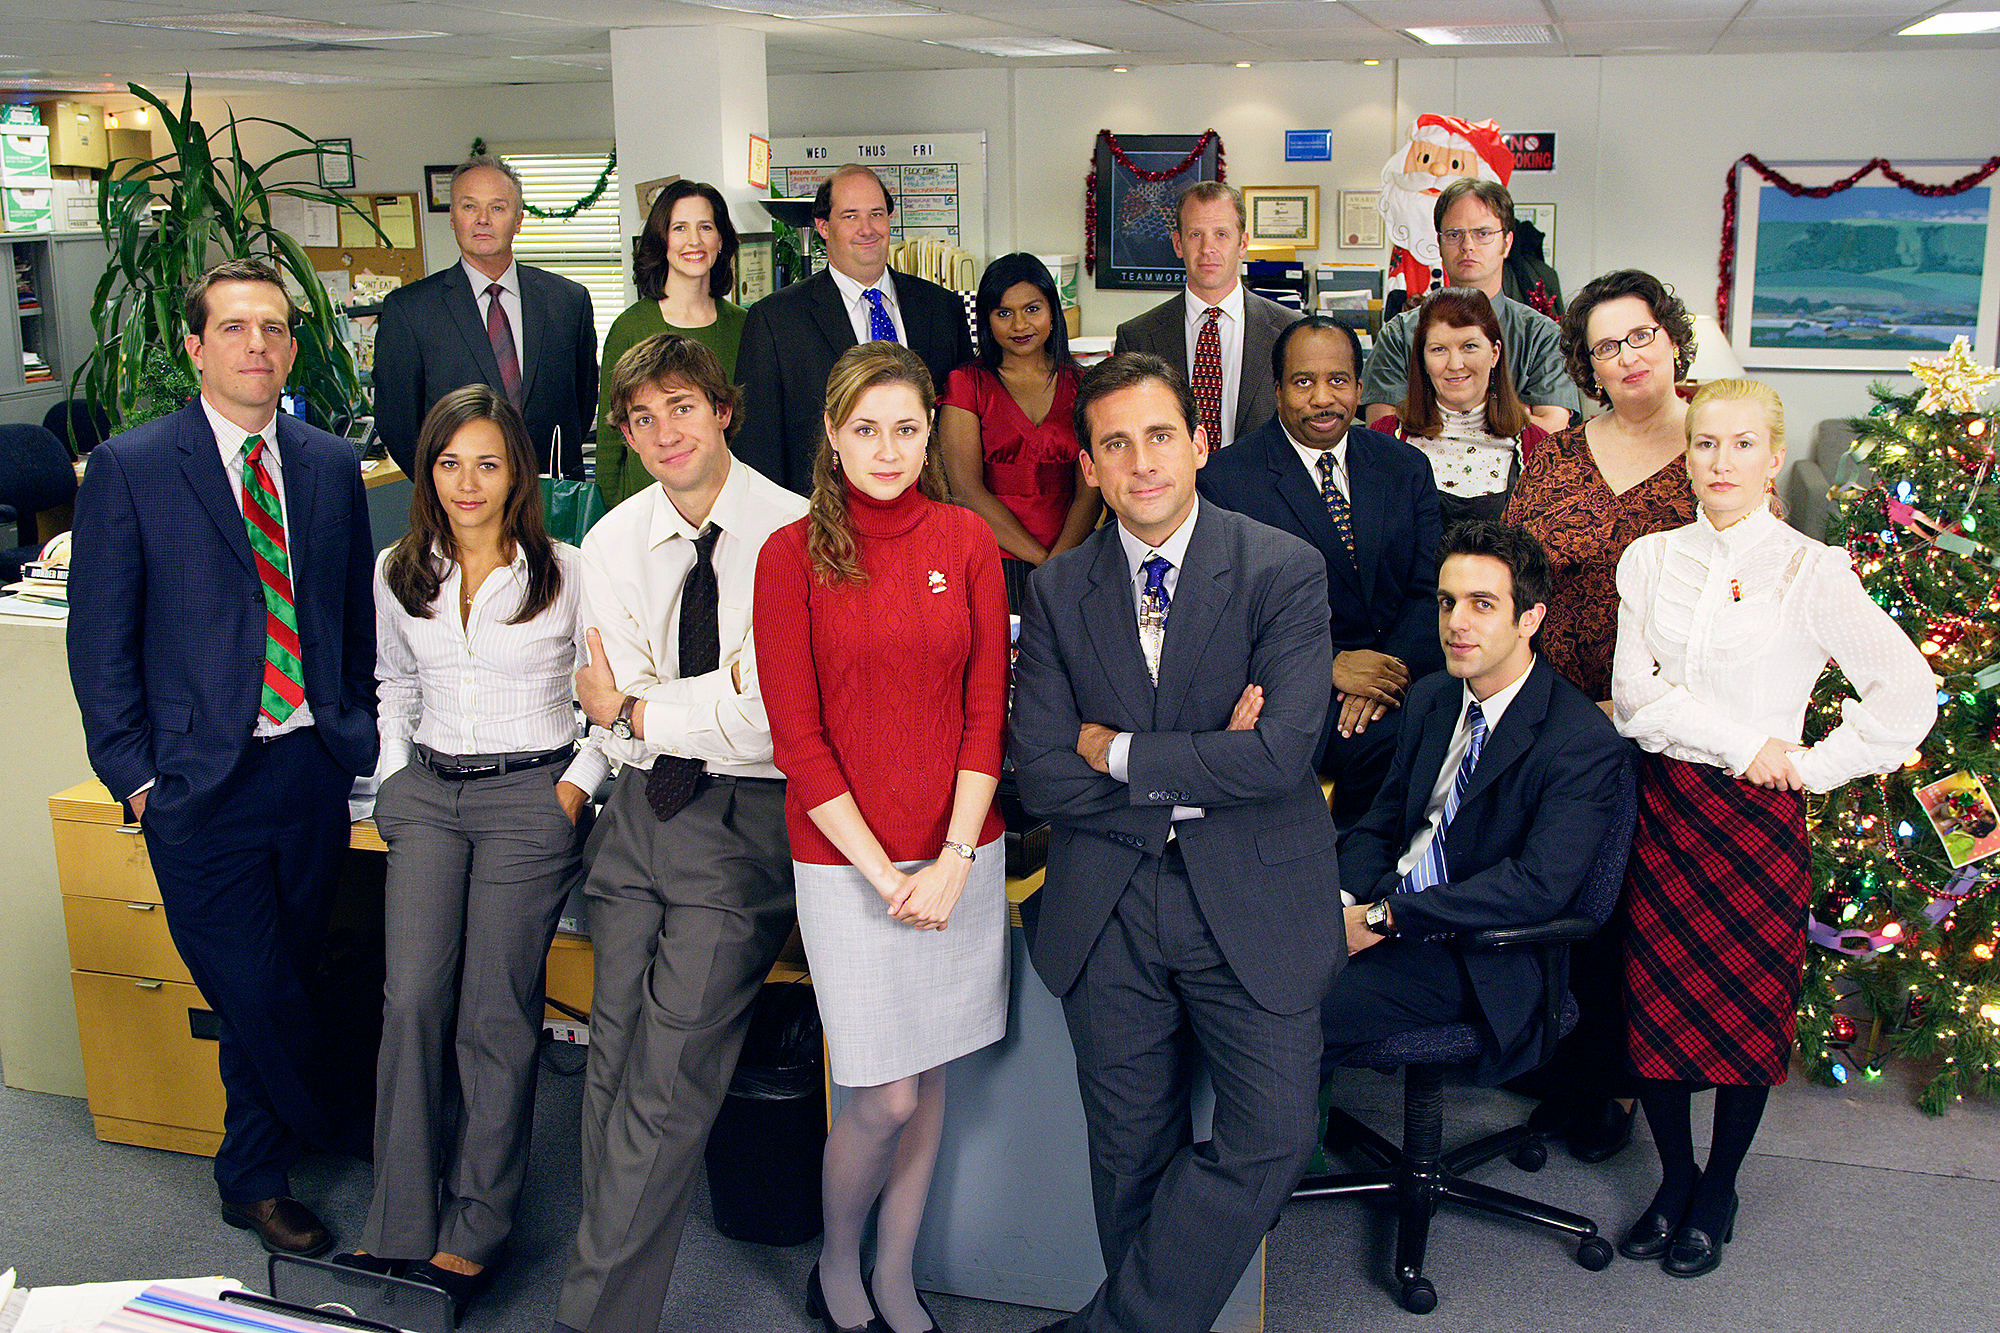 'The Office' Revival at NBC Featuring Old, New Cast - 2018-19 Season